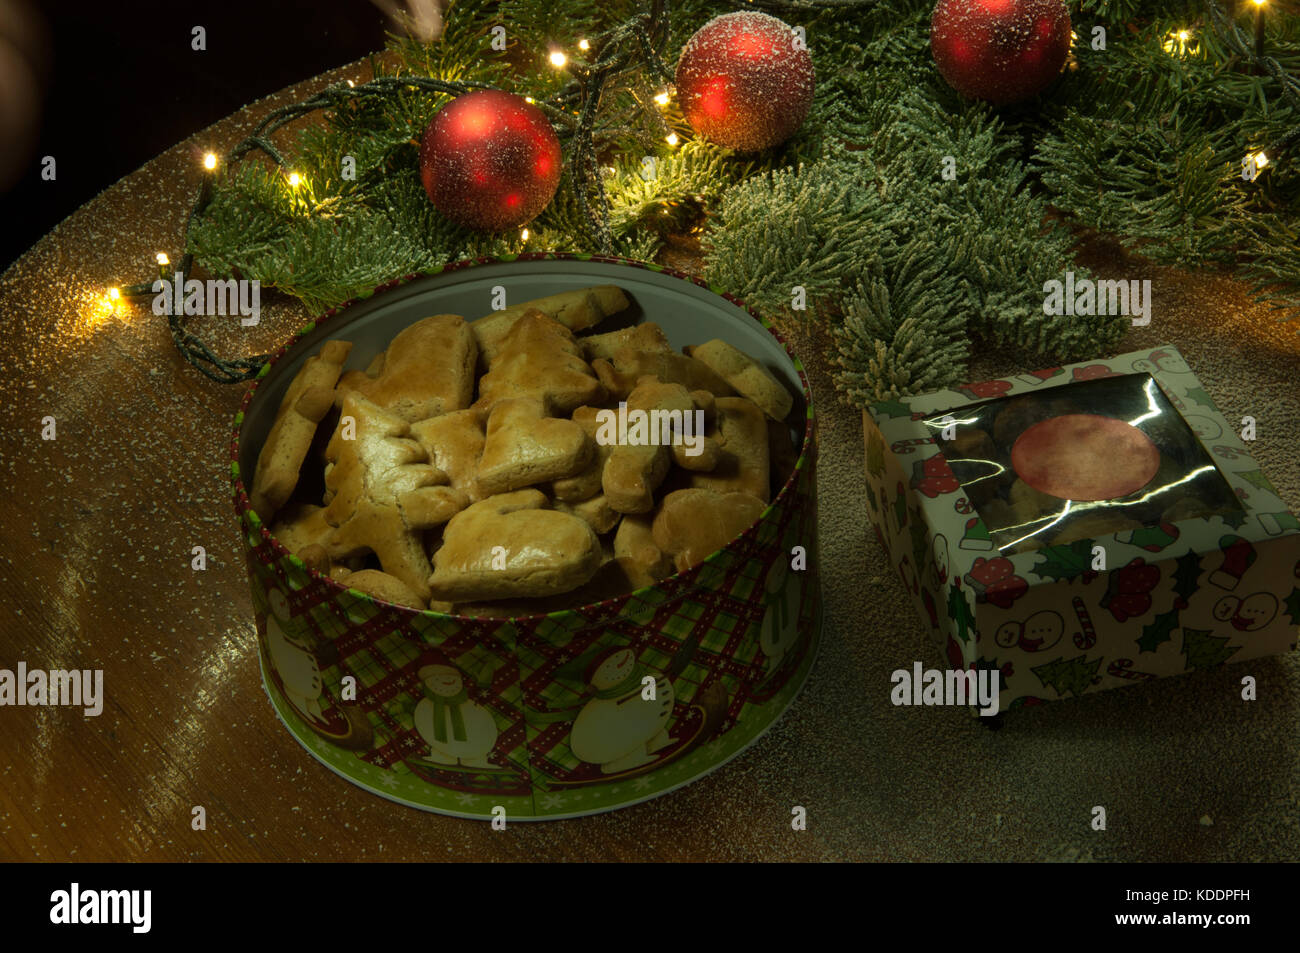 New Year Christmas Cookies With Christmas Decorations And Branch Of